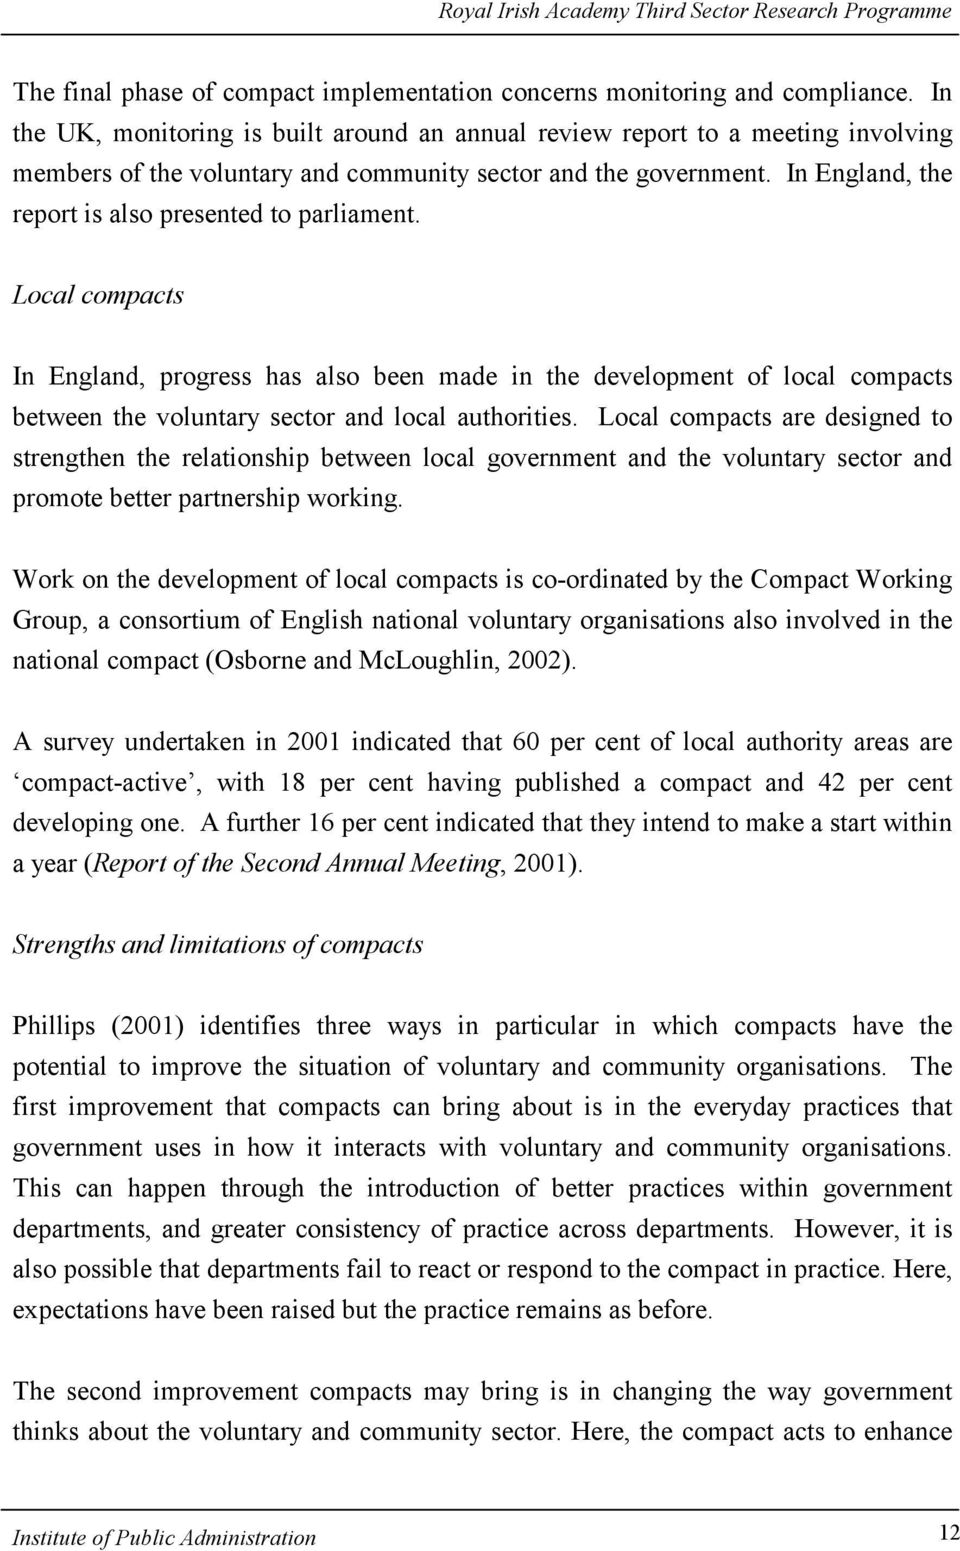 In England, the report is also presented to parliament. Local compacts In England, progress has also been made in the development of local compacts between the voluntary sector and local authorities.